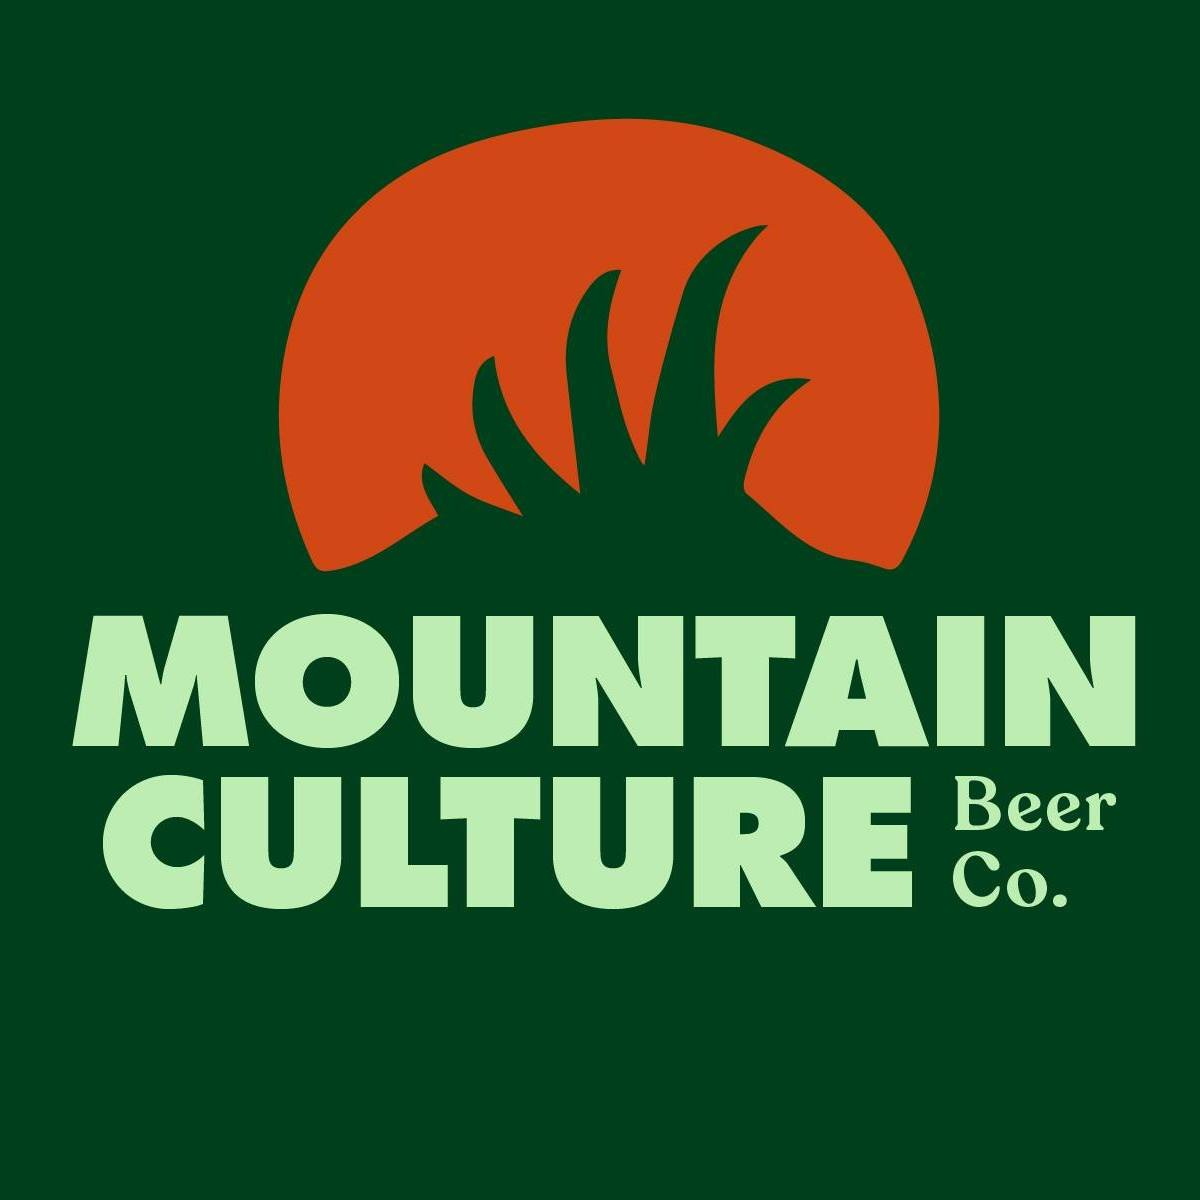 Introducing Mountain Culture Beer Co